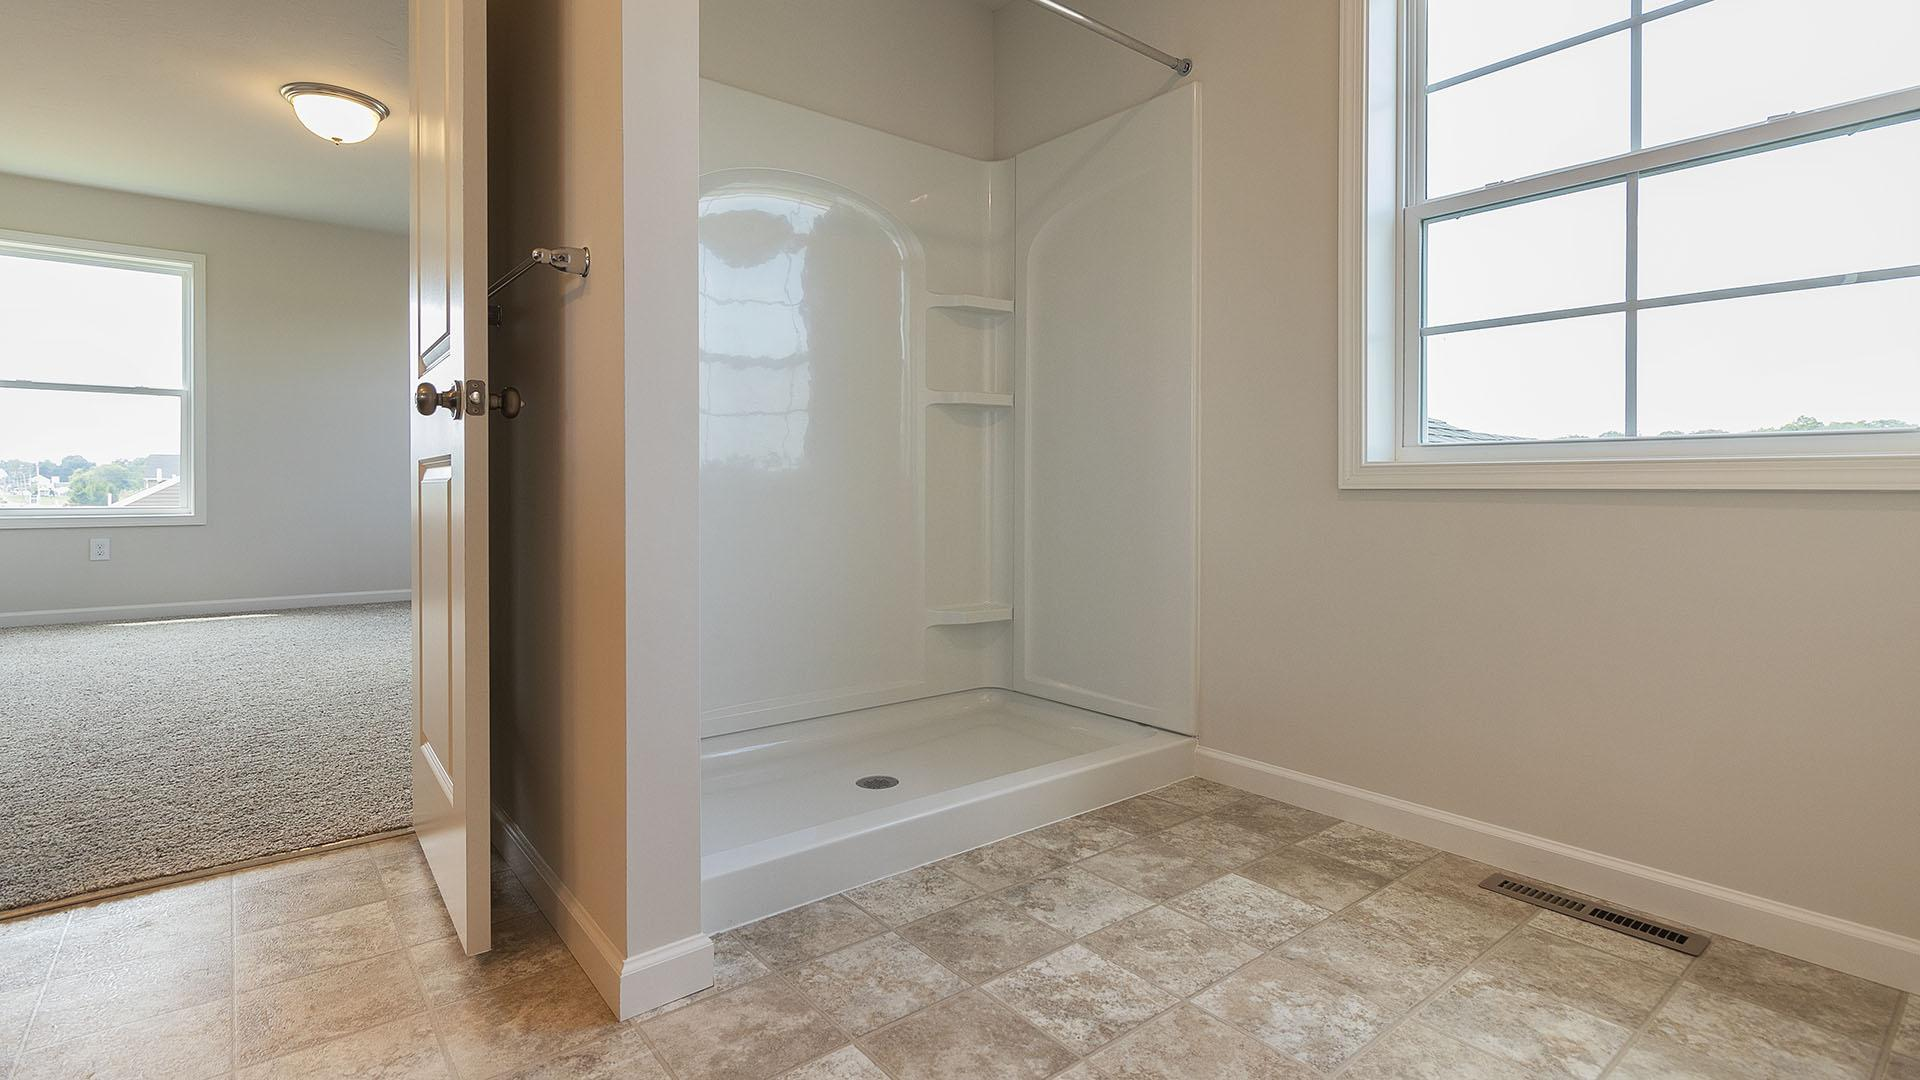 Bathroom featured in the Redwood By S & A Homes in Harrisburg, PA